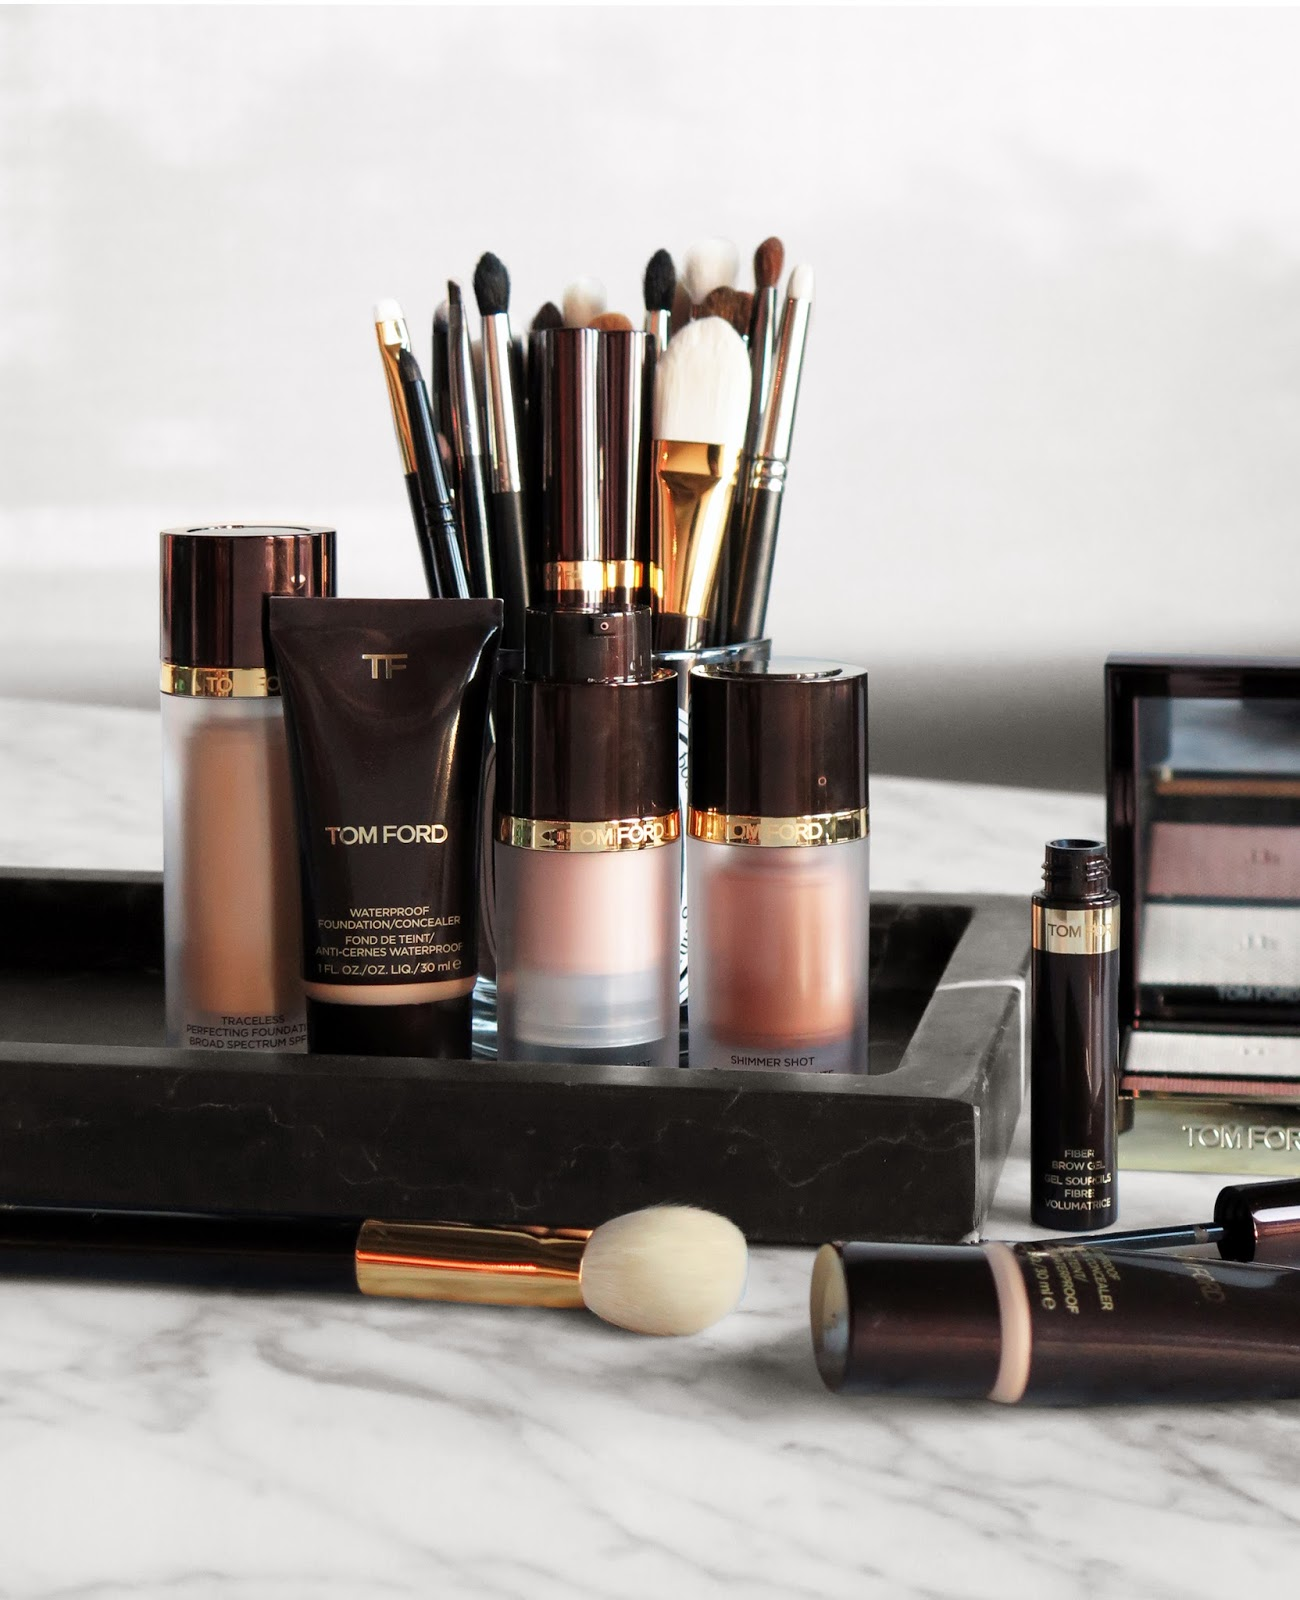 Tom Ford Beauty Face Collection Waterproof Foundation Concealer Shimmer Shots And Fiber Brow Gel The Beauty Look Book